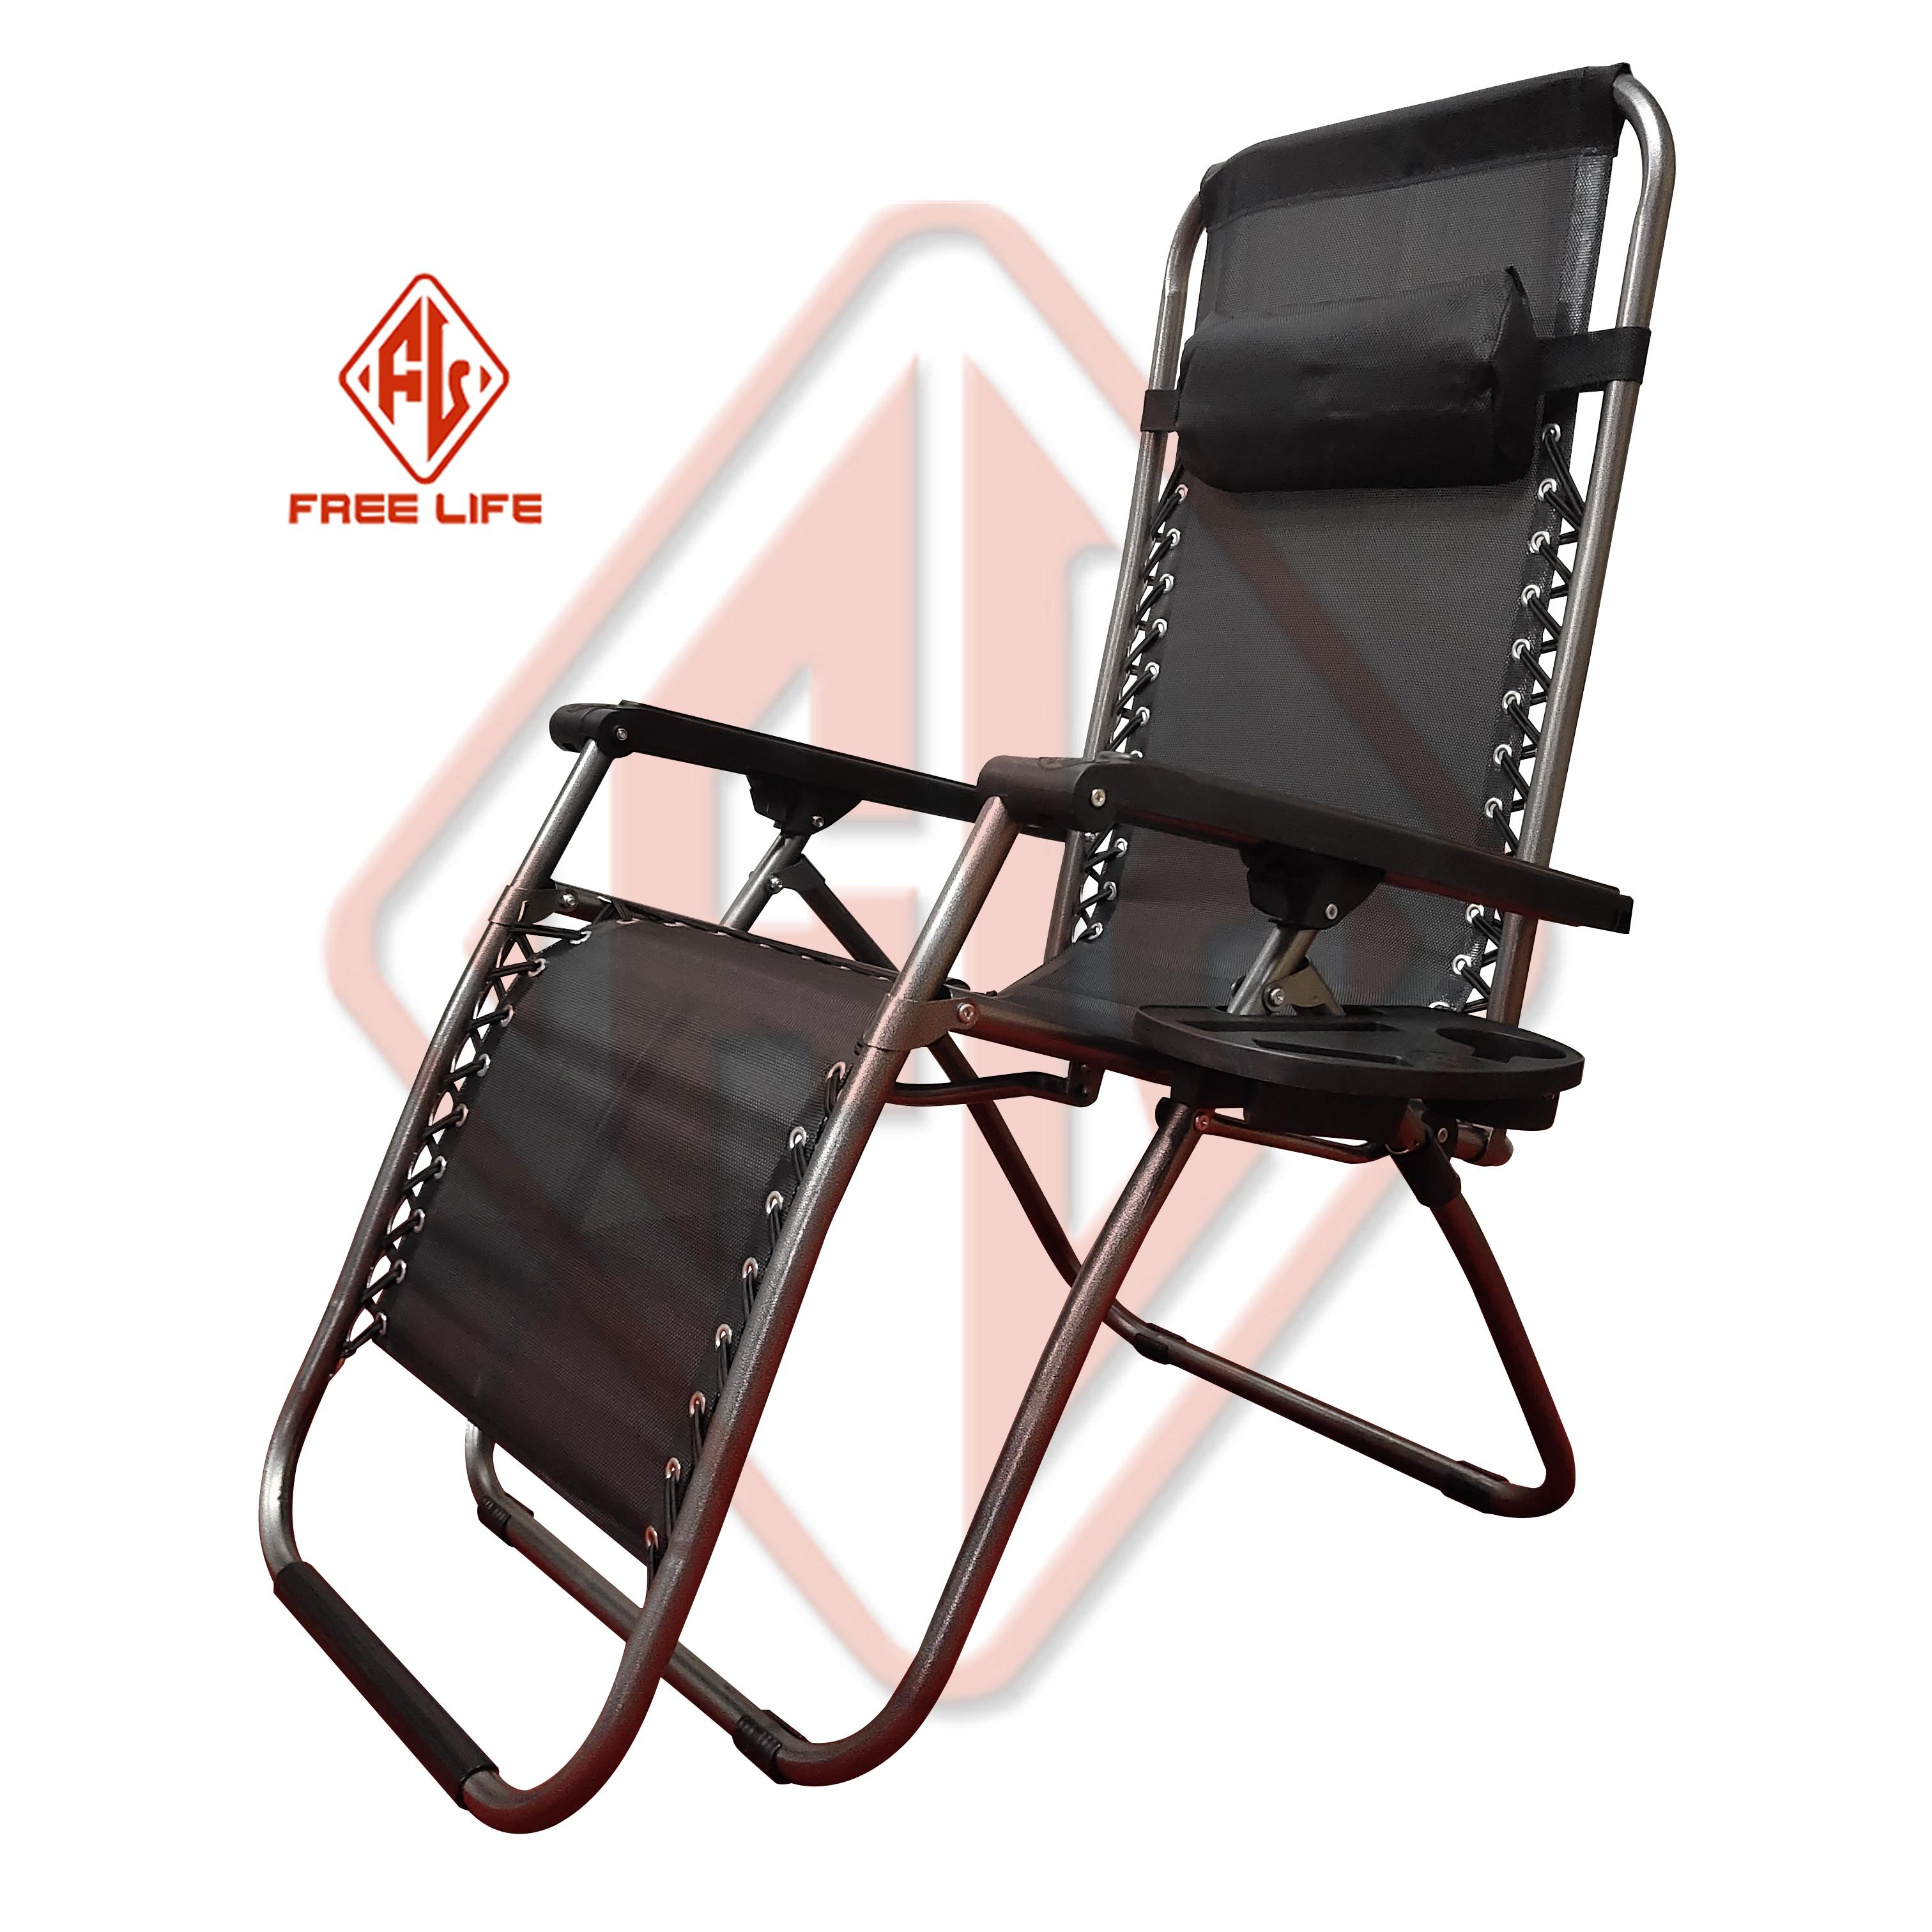 - FREE LIFE Folding Chair Folding Bed Zero Gravity Chair Best Gift